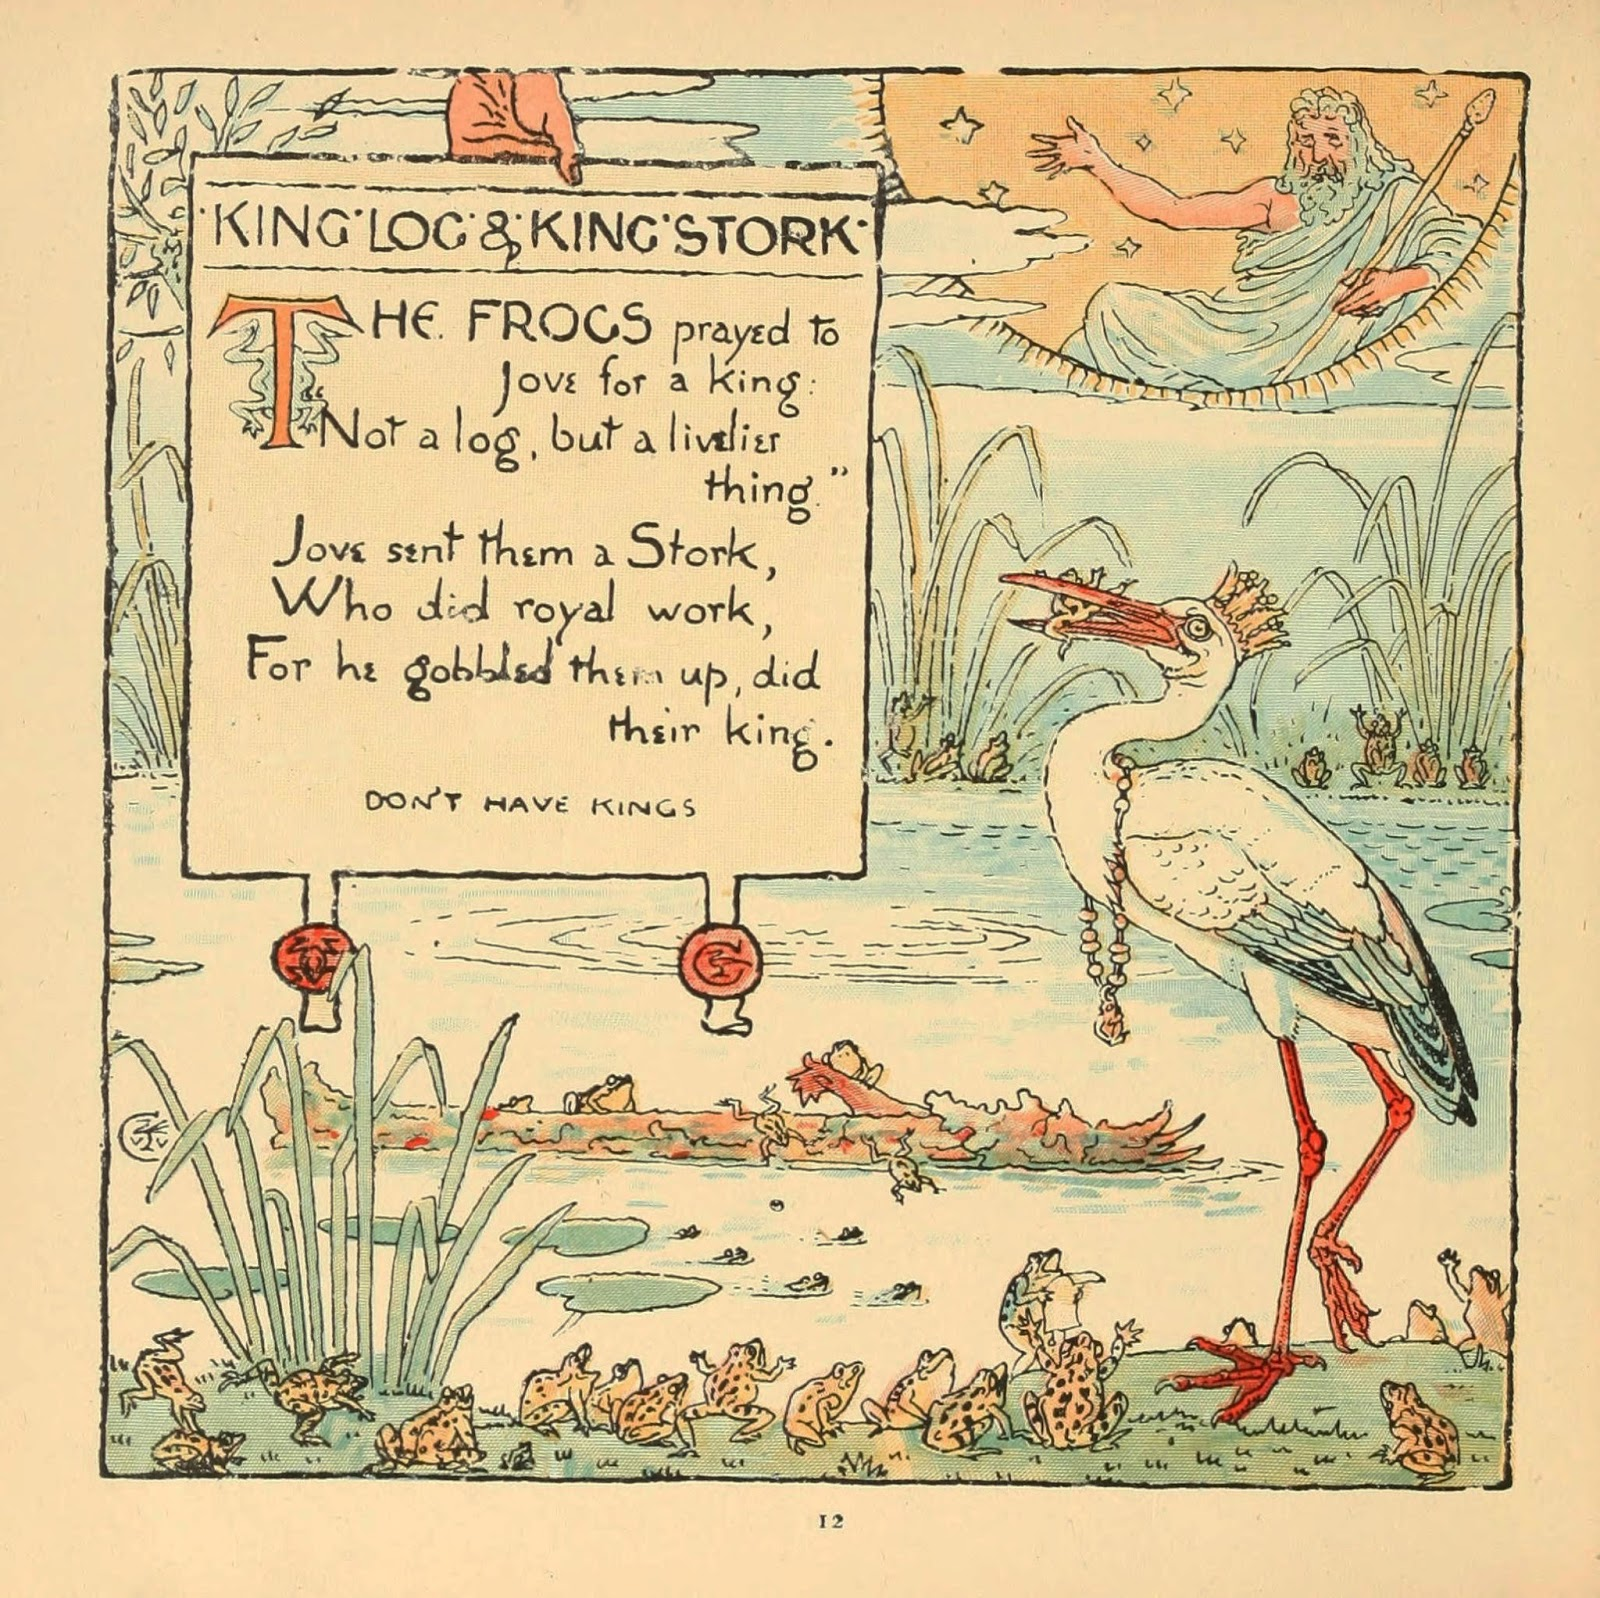 Aesop fable of stork as frog king